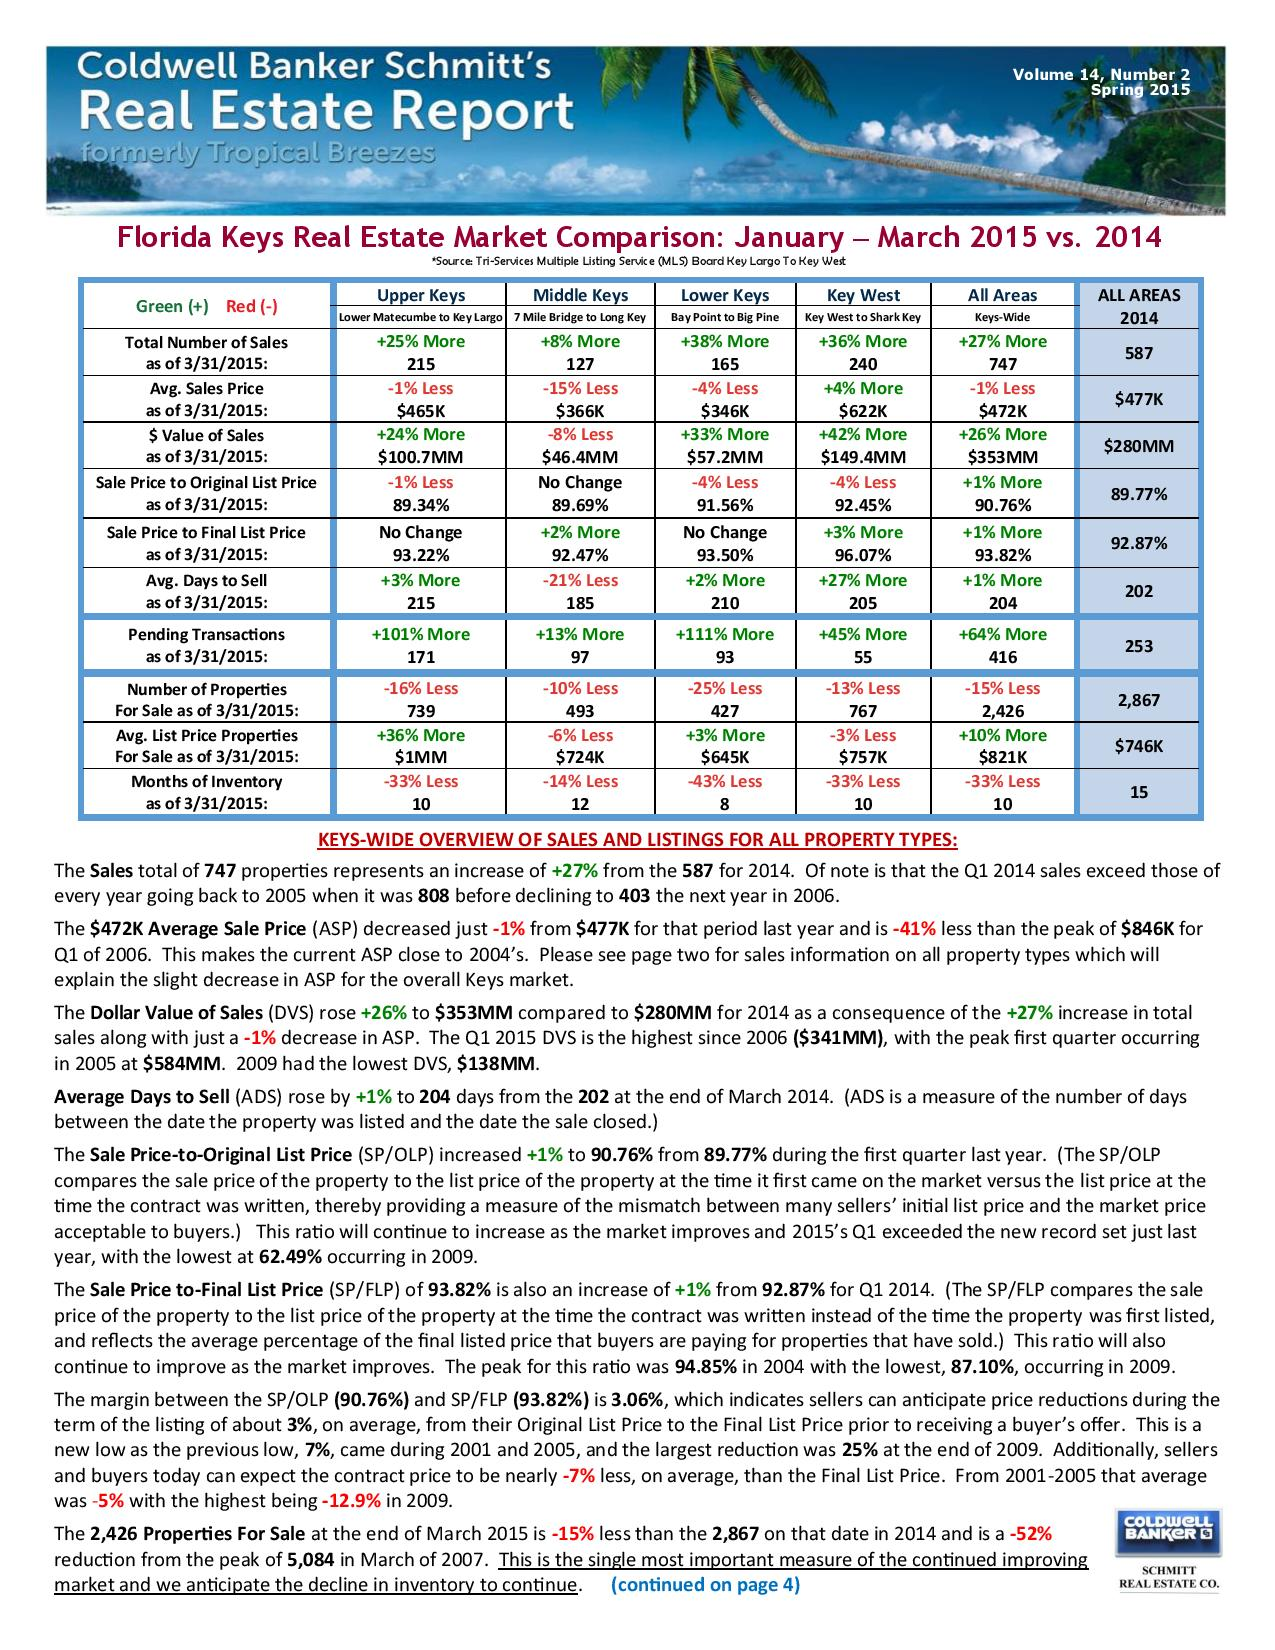 Spring 2015 Key West Real Estate Report Released